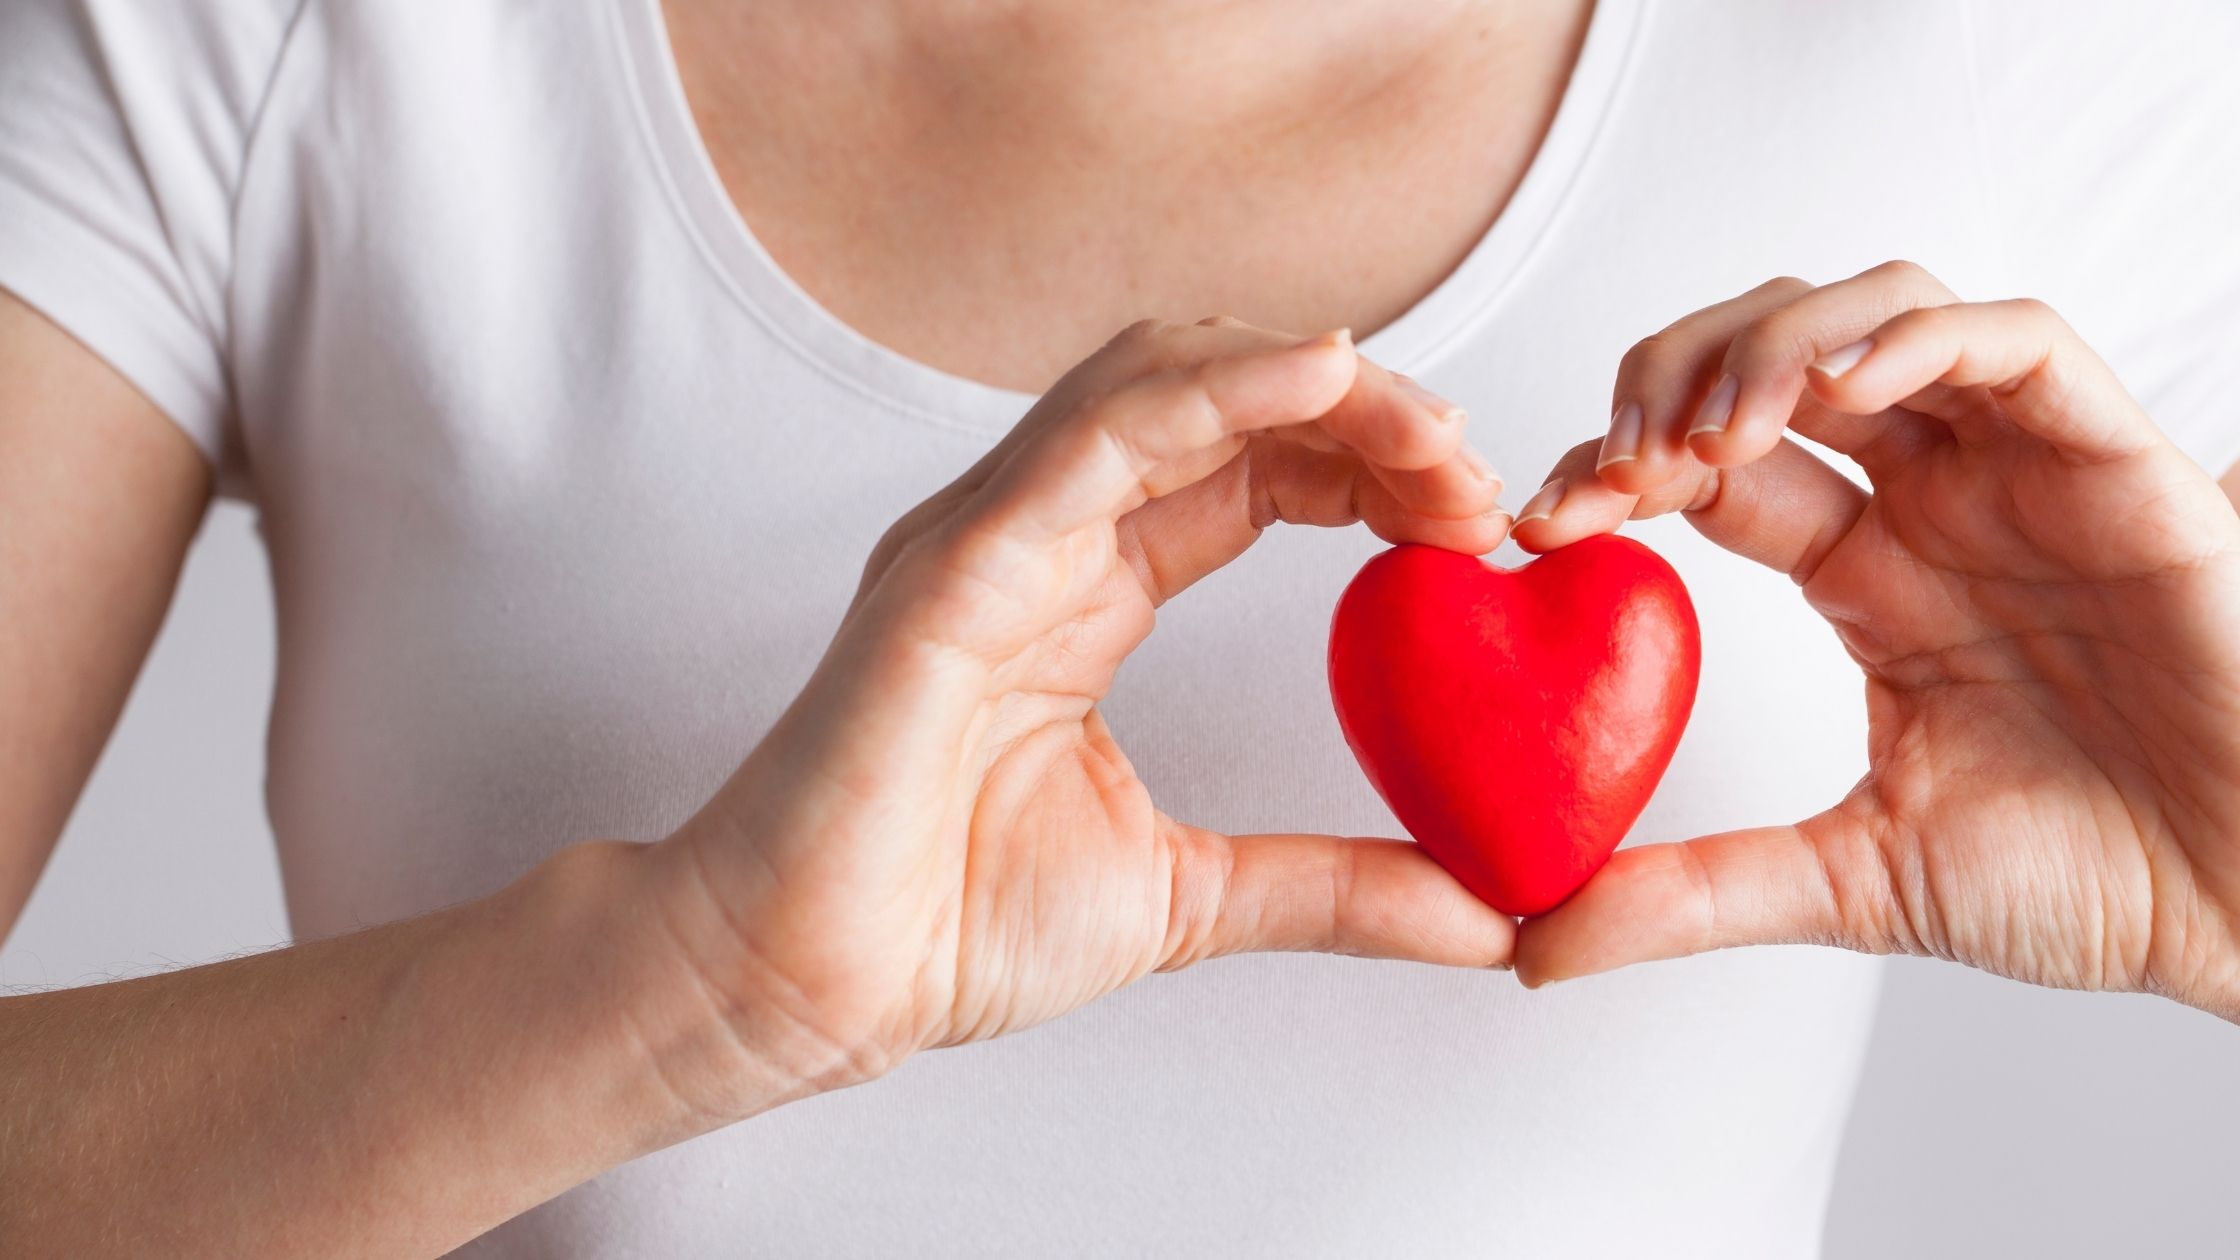 How Does Having COVID-19 Affect My Heart Health